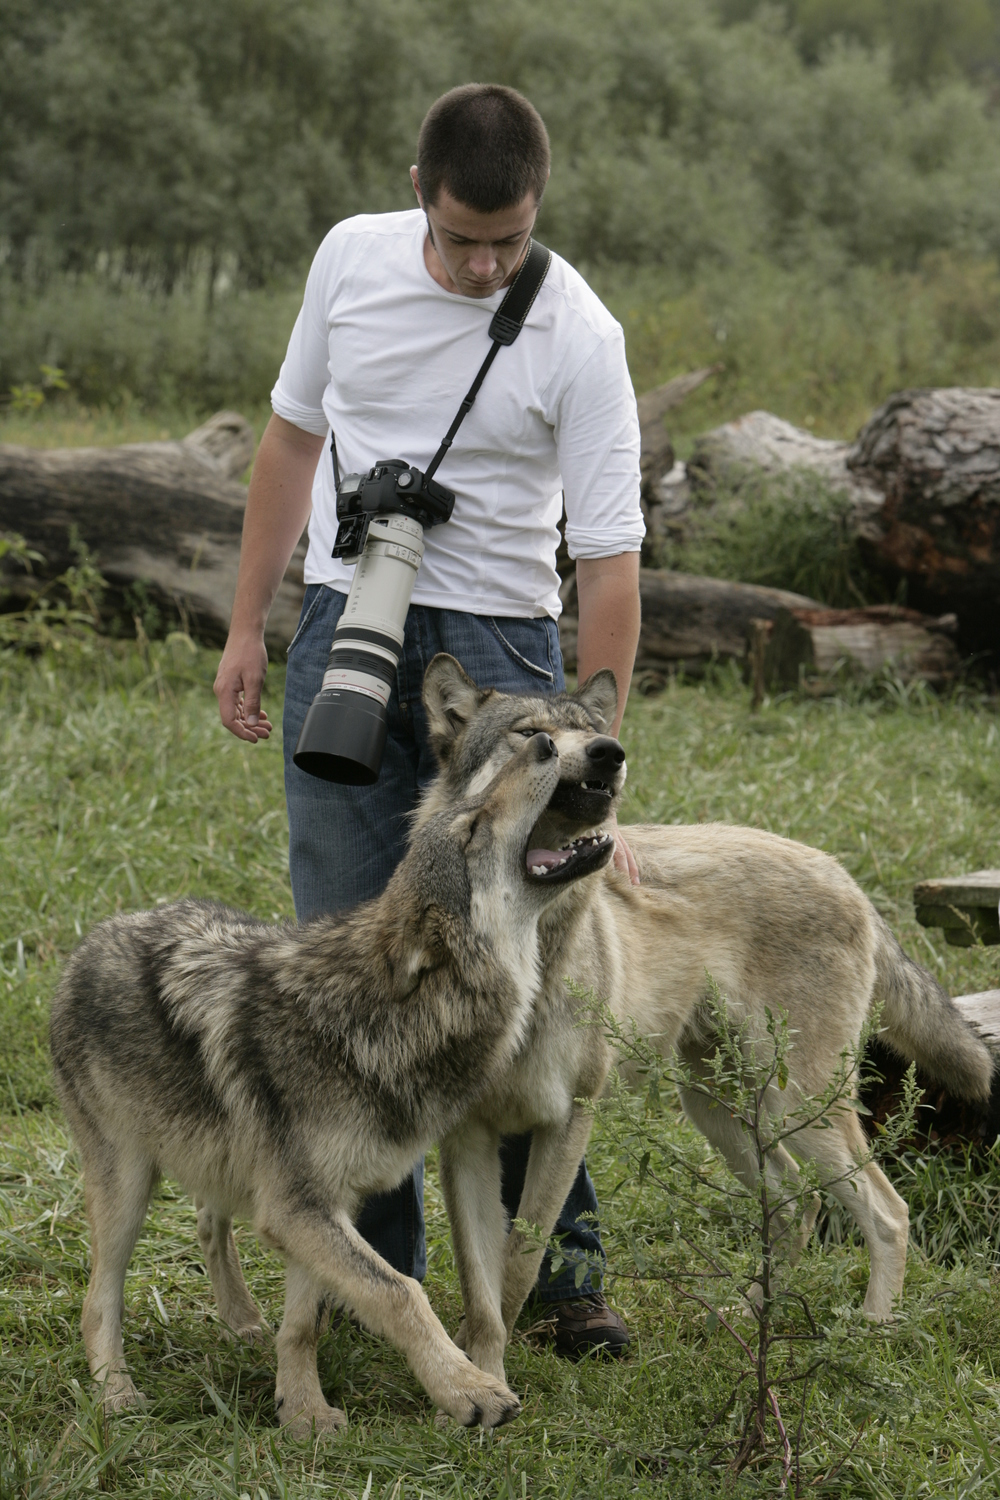 Me, aged 20, with grey wolves in the USA (c) M Sloan